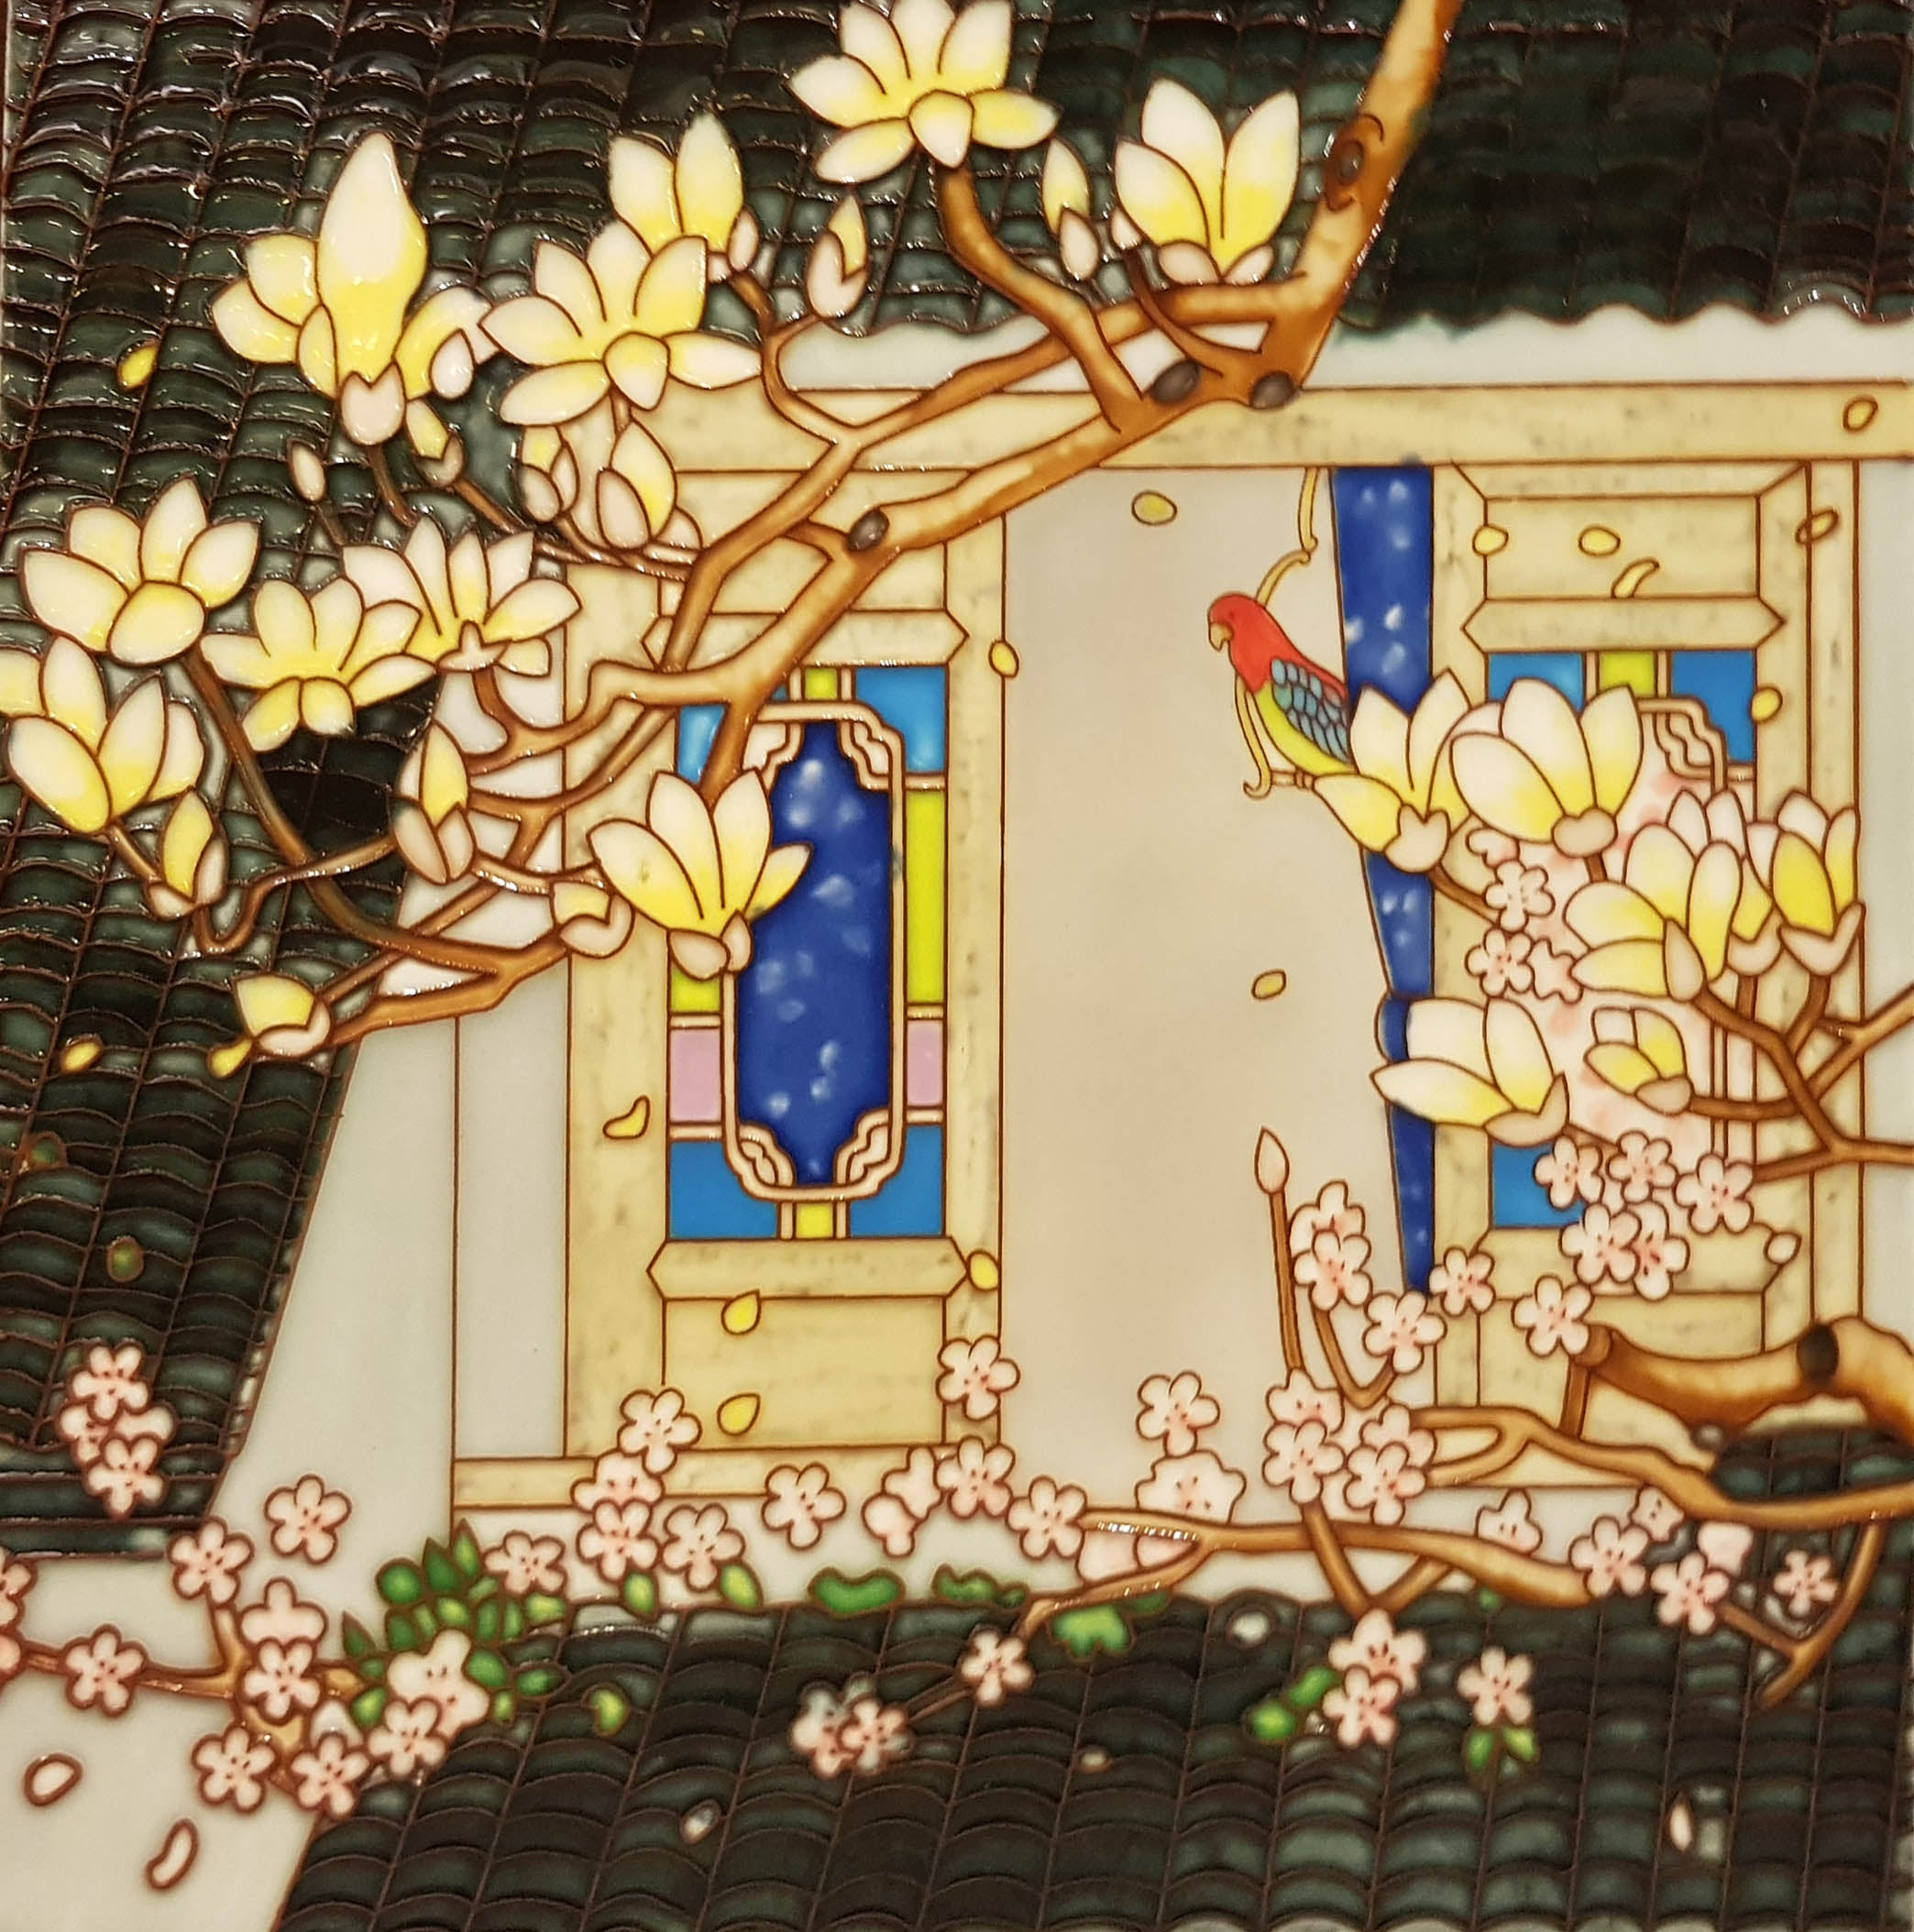 3539 Colored Window with Red Bird 30cm x 30cm Ceramic Tile